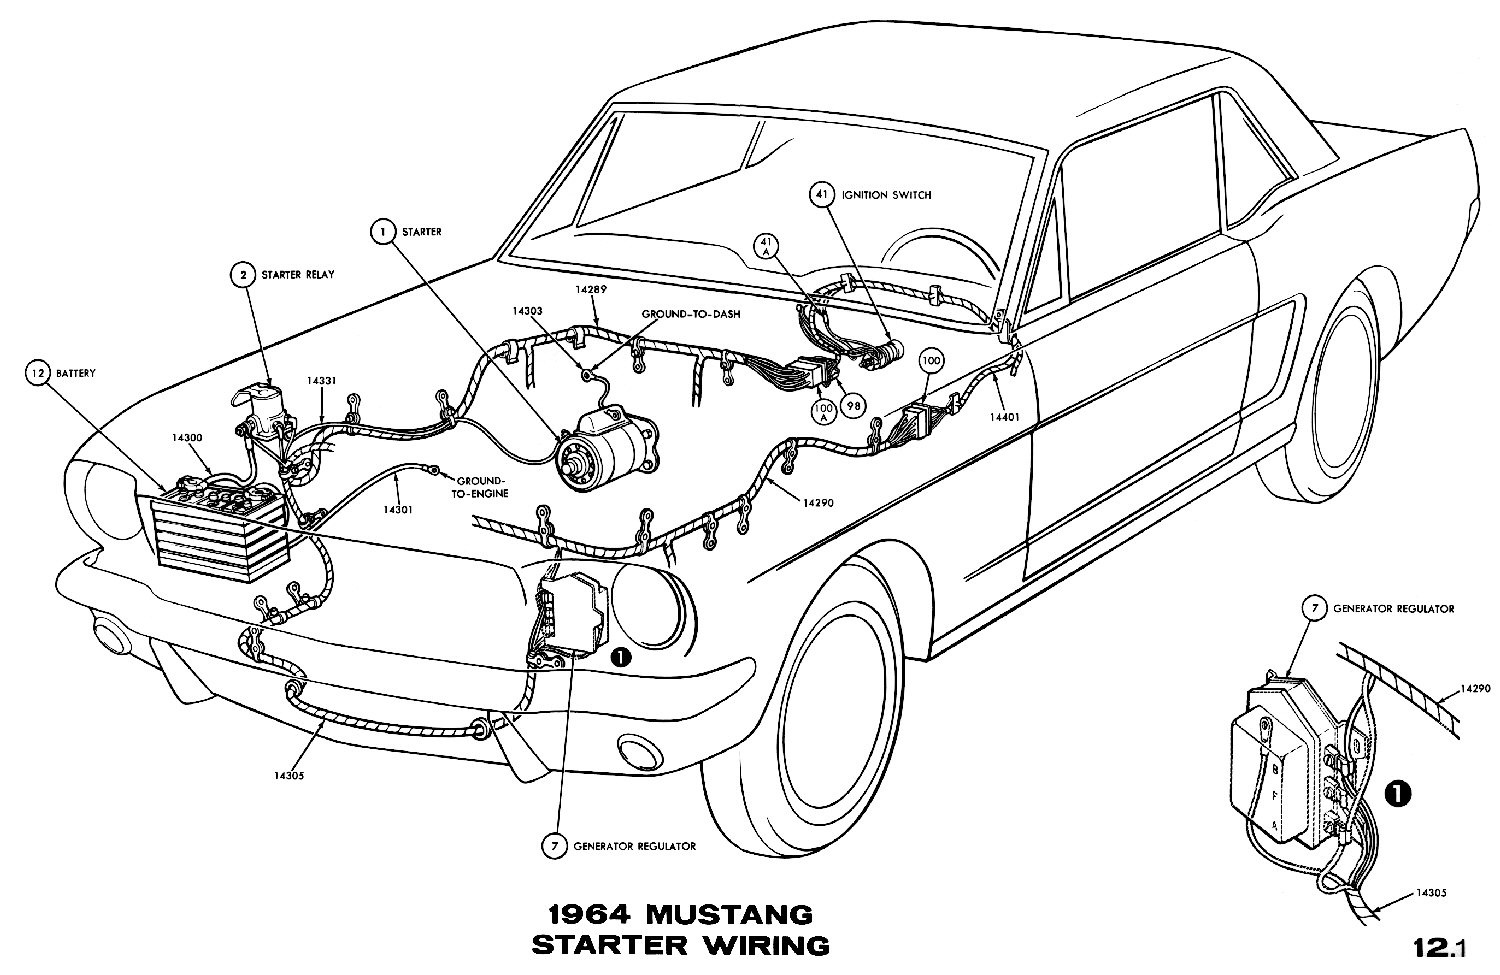 1964 Mustang Wiring Diagrams Average Joe Restoration Ford Start Diagram Sm1964d Starter Pictorial Or Schematic